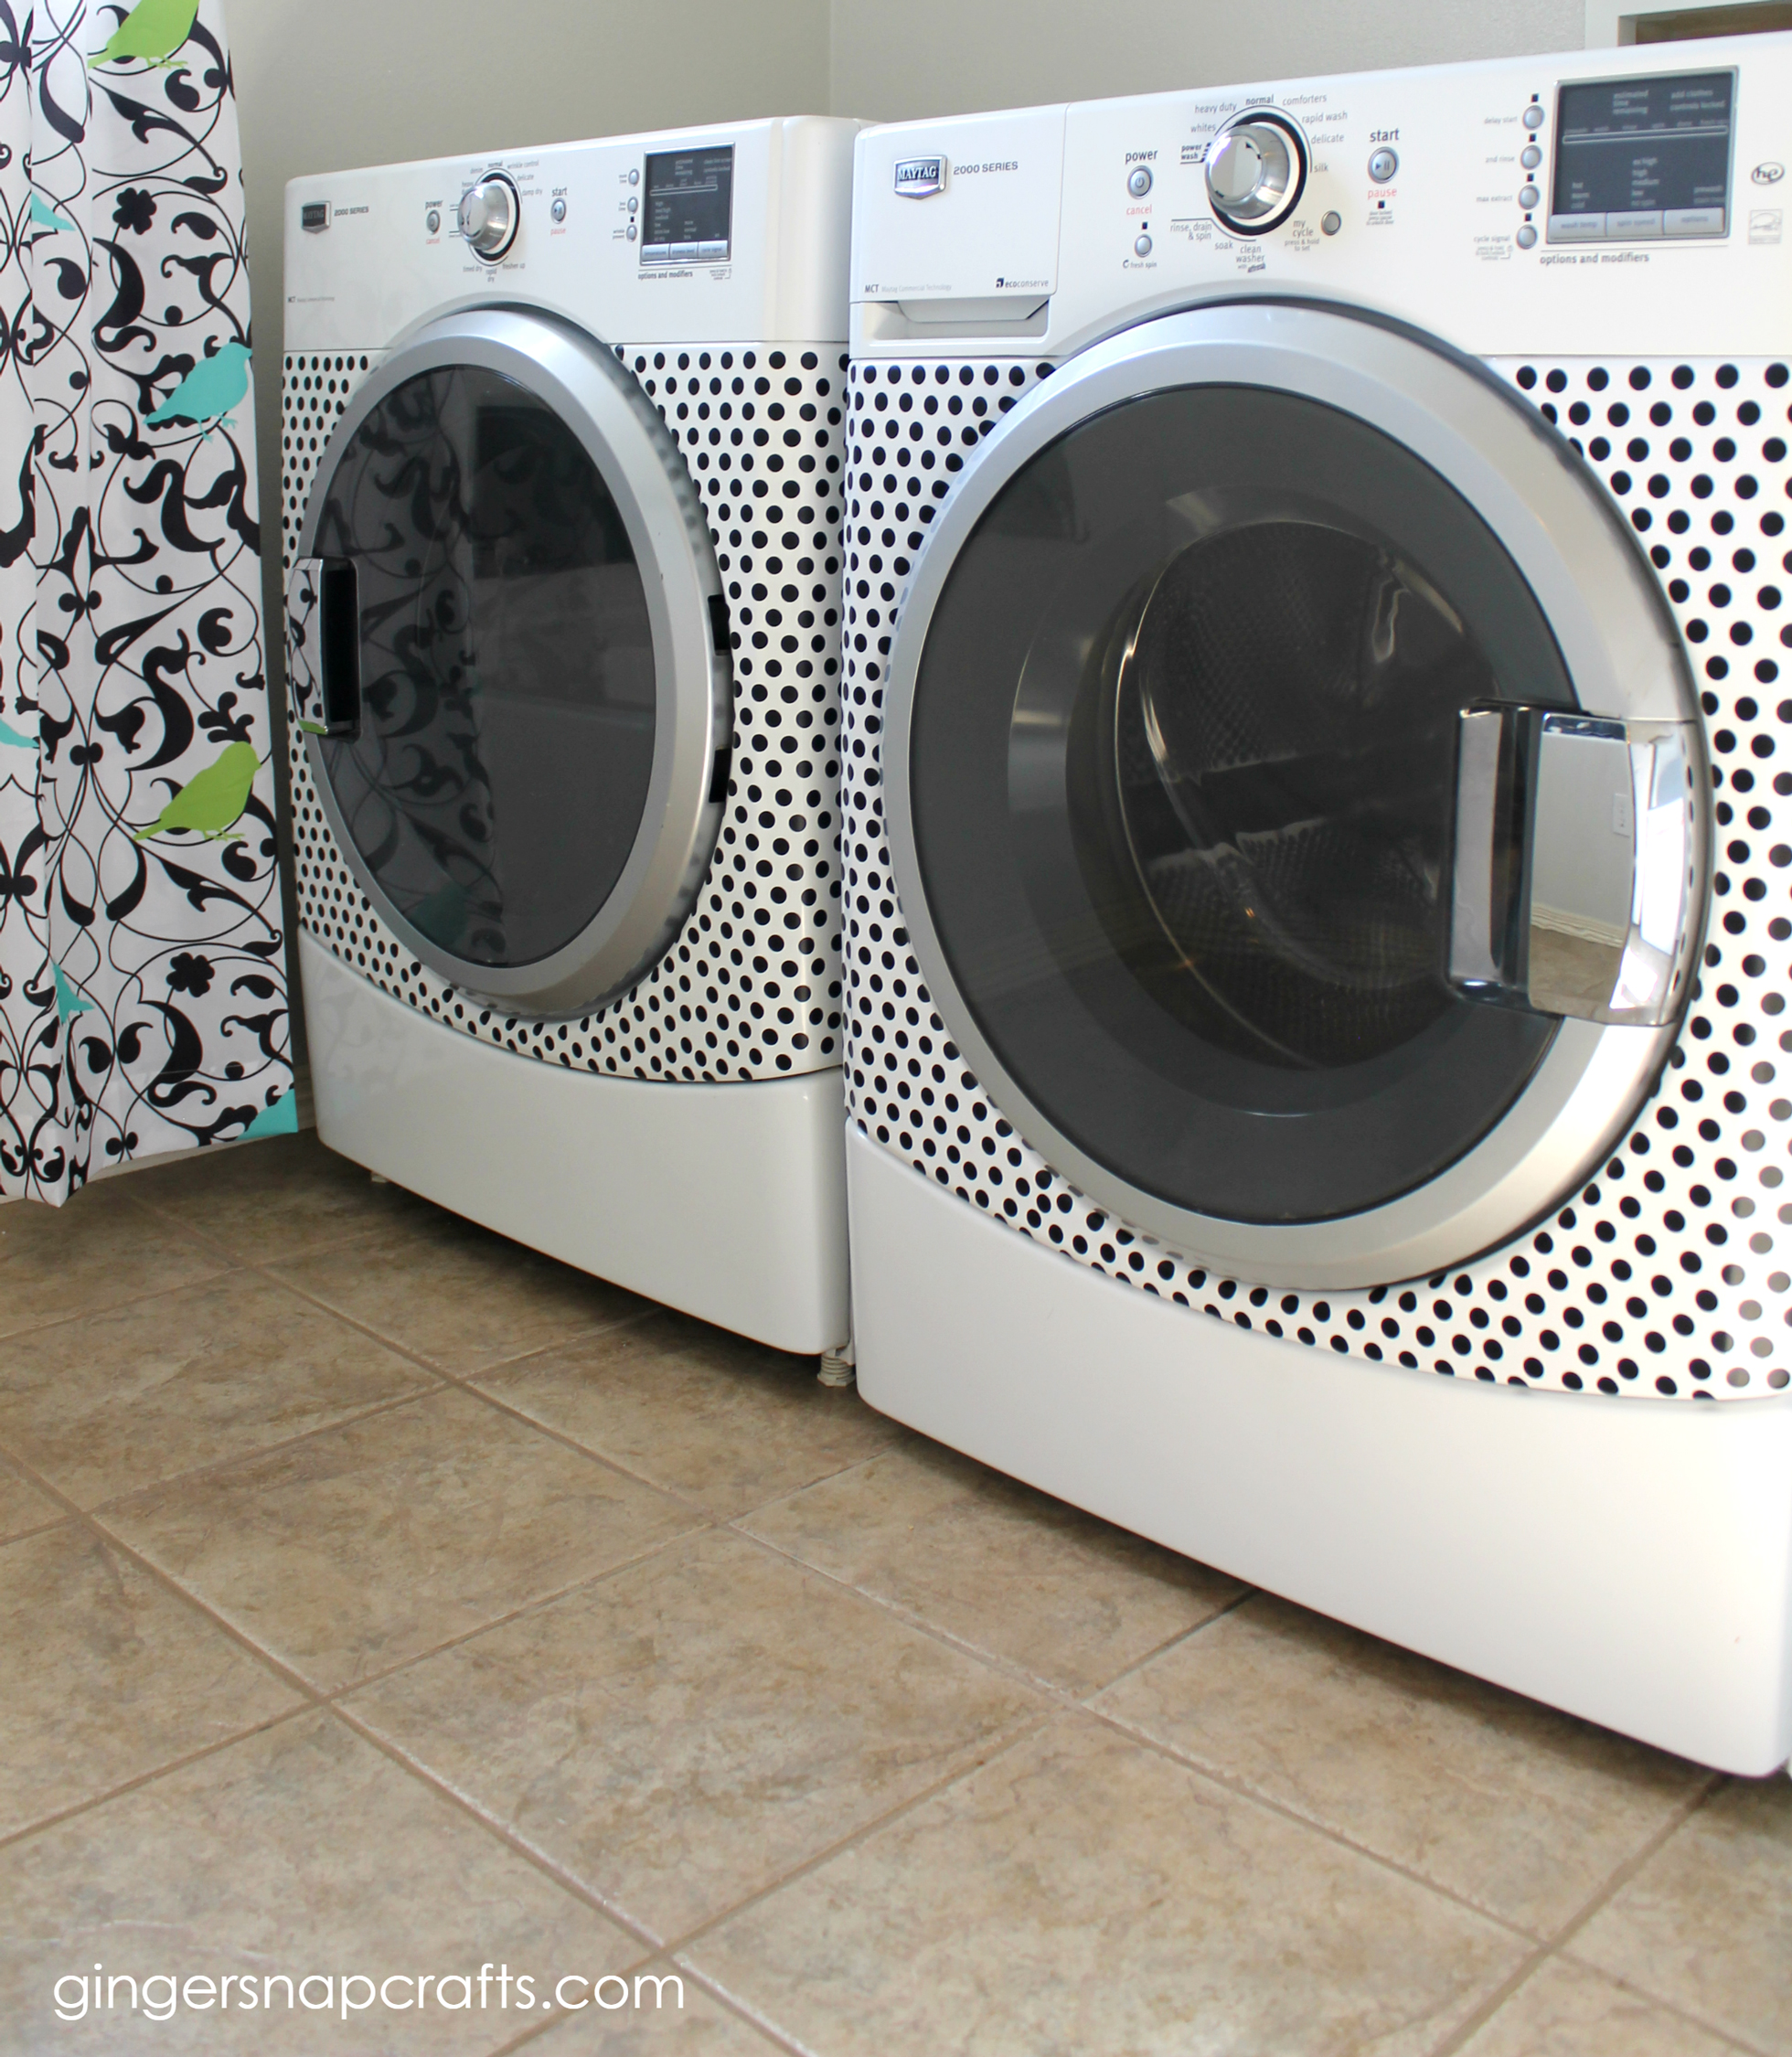 White washing machine and dryer with black polka dots